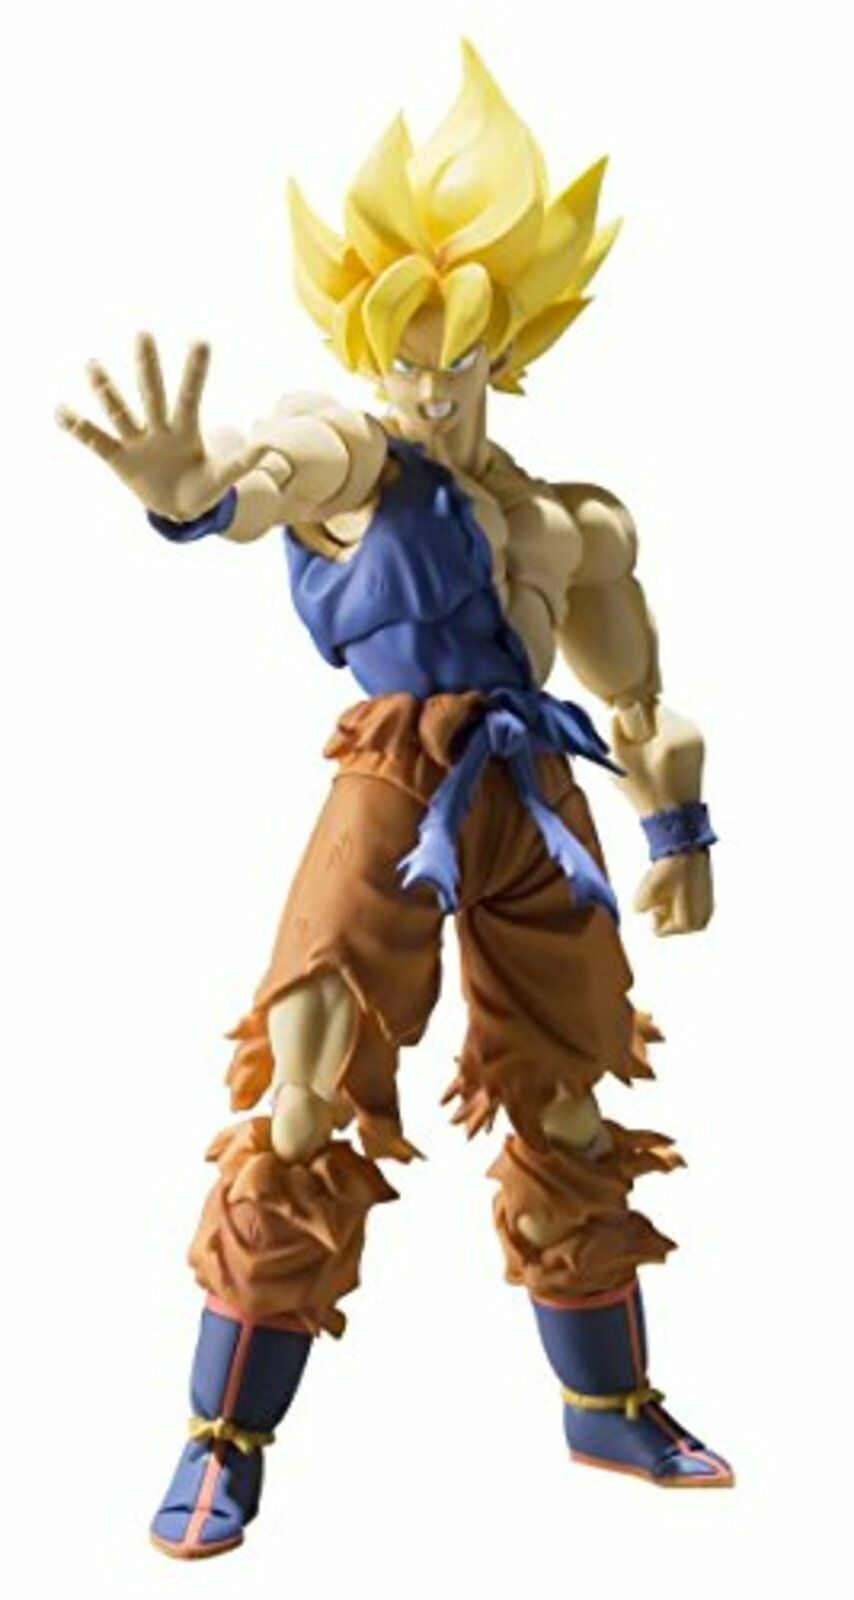 Dragon Ball S.H.Figuarts Super Saiyan Son Goku Awakening ACTION FIGURE gokou F/S